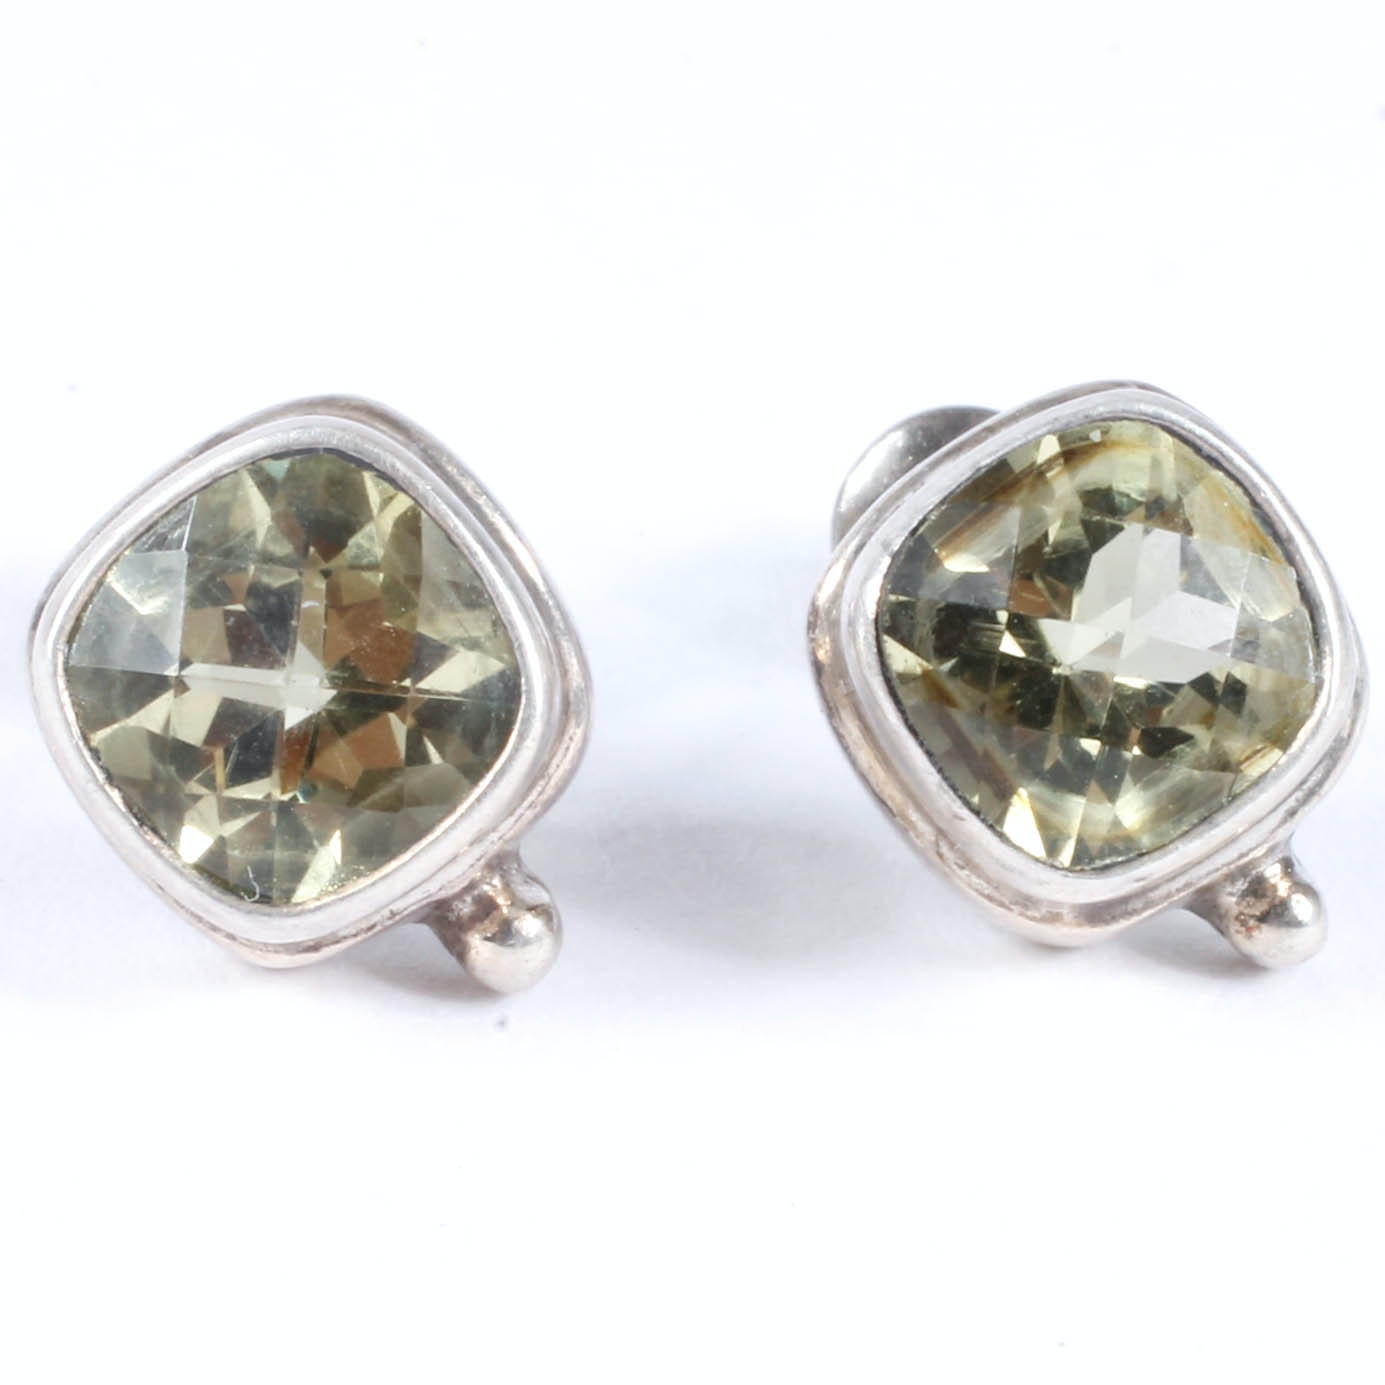 Sterling Silver Earrings with Green Quartz Stones